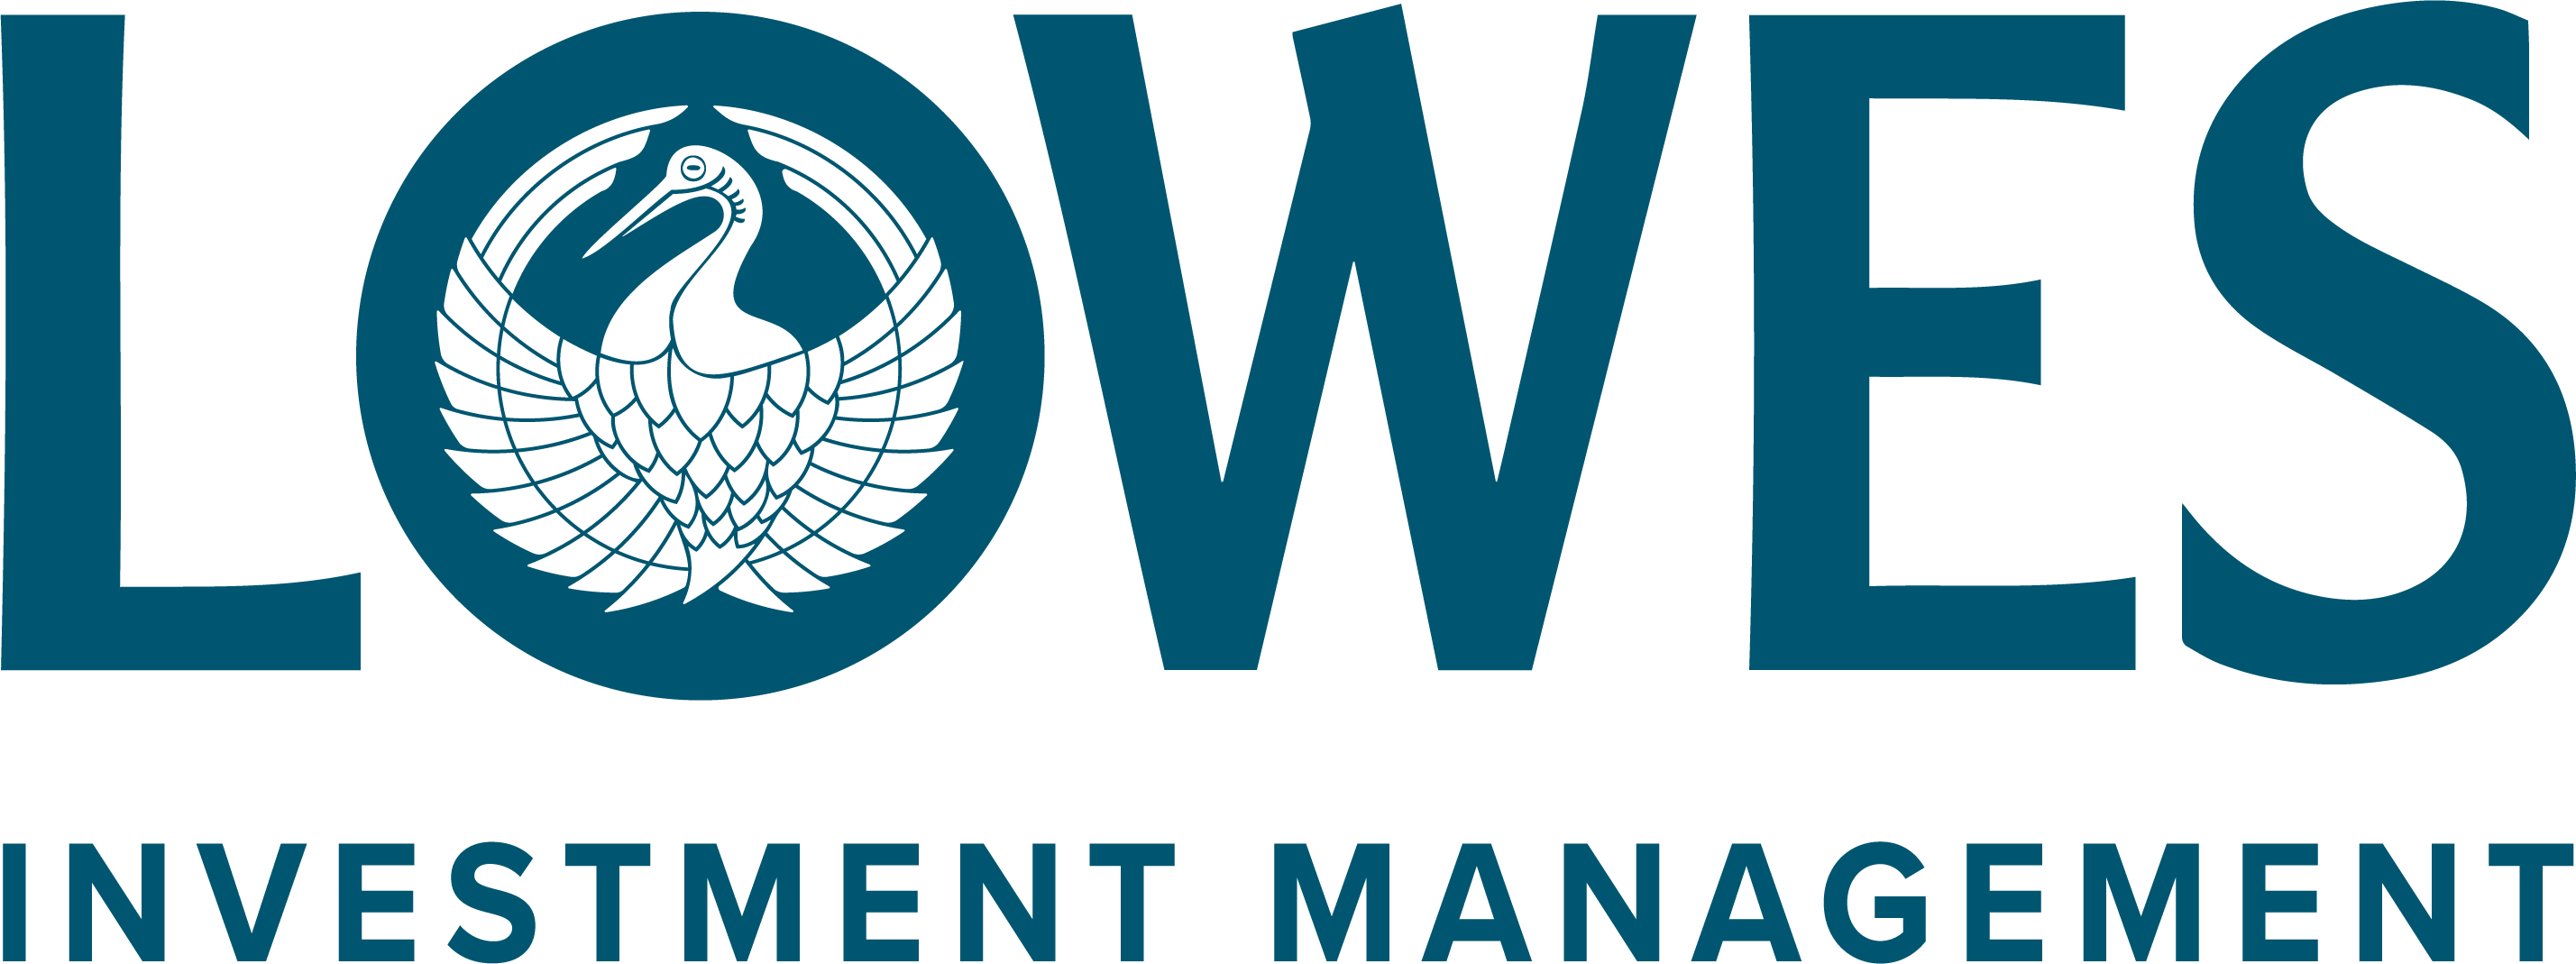 Lowes Financial Management